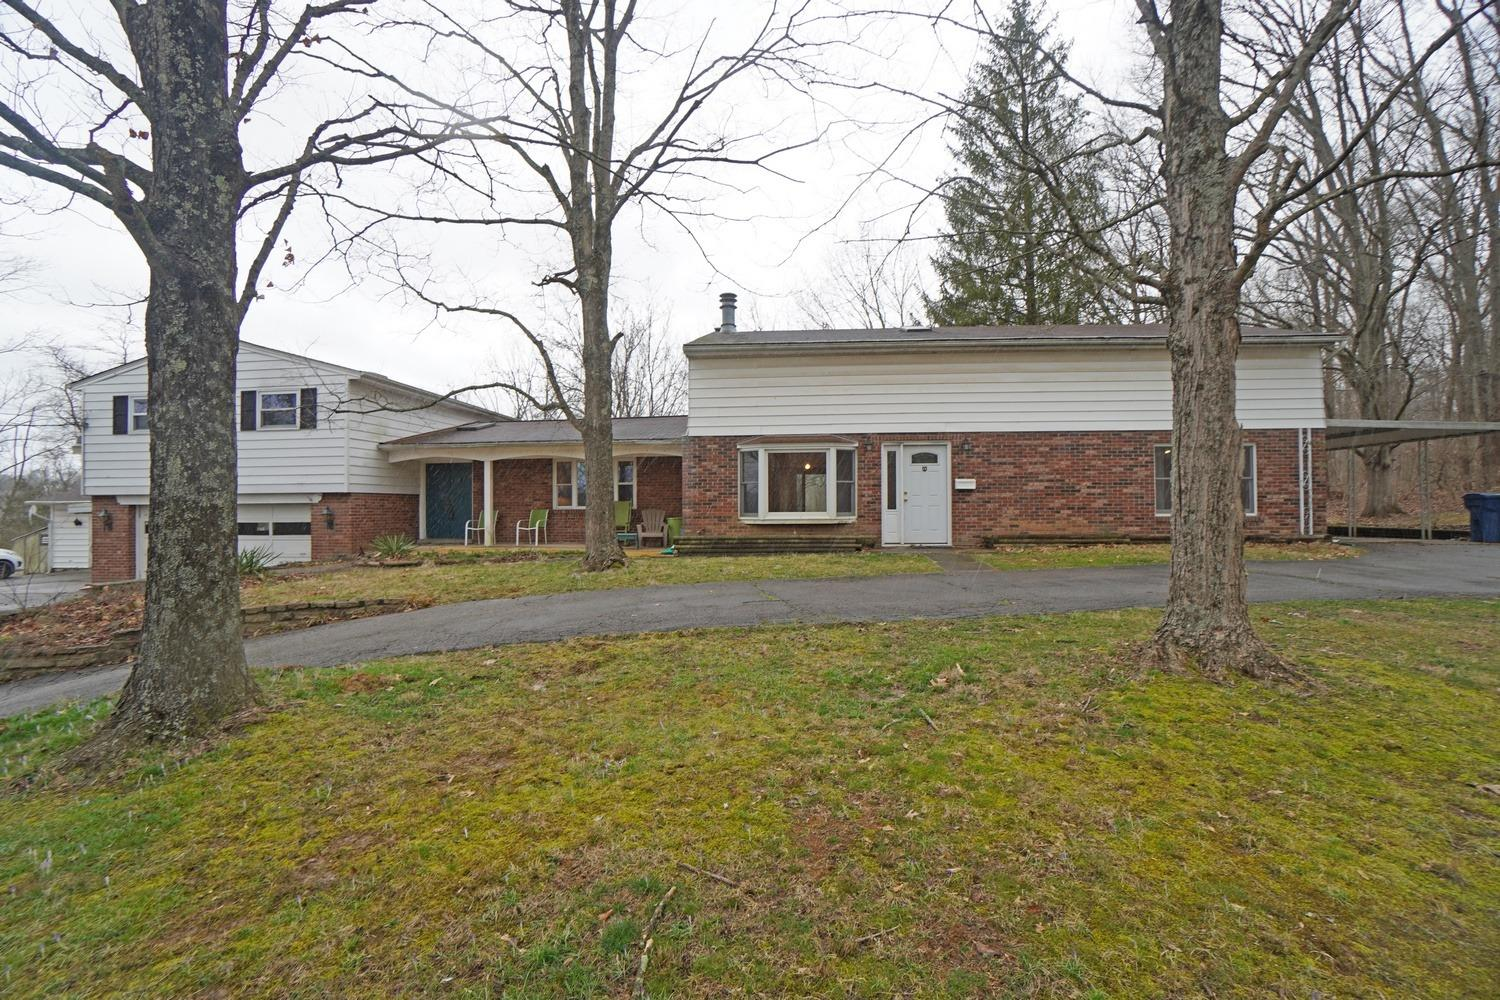 6159 Branch Hill Miamiville Rd Miami Twp OH